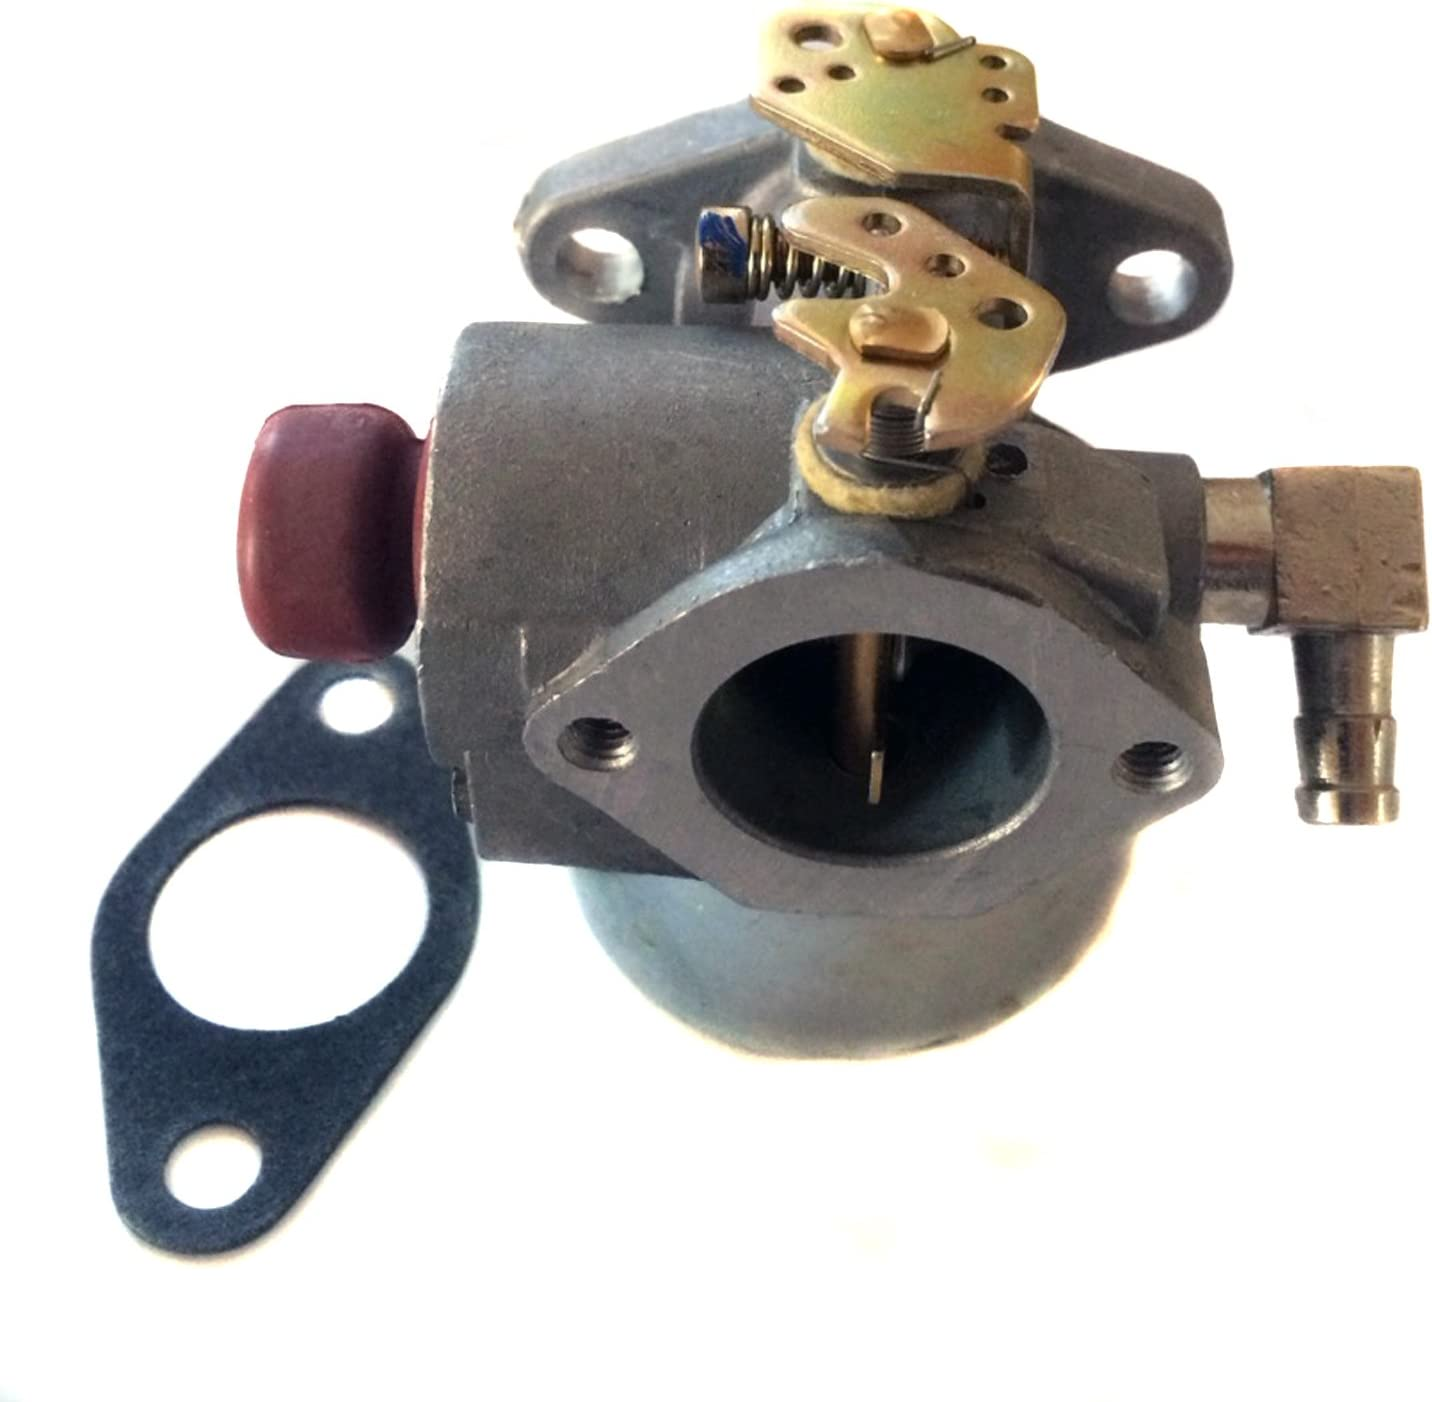 Tecumseh Carburetor Fits Models LEV115-350090C LEV115-350090D LEV115-350119C KINGSTORE